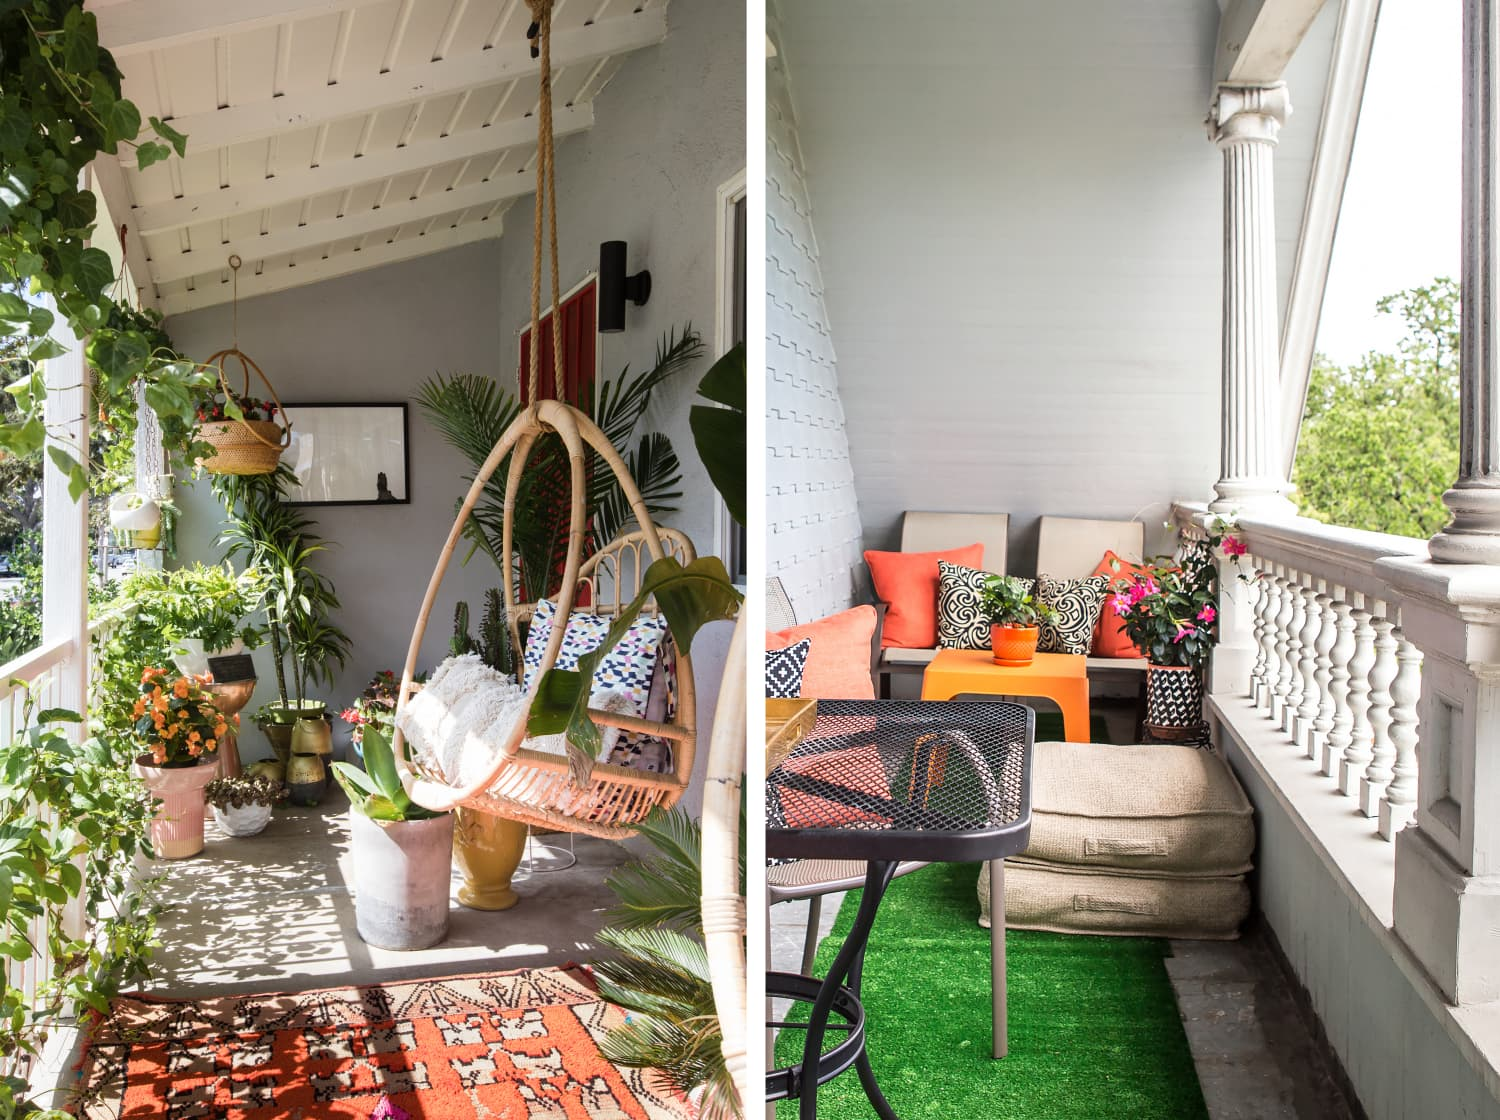 17 of the Smallest, Yet Stylish, Outdoor Spaces